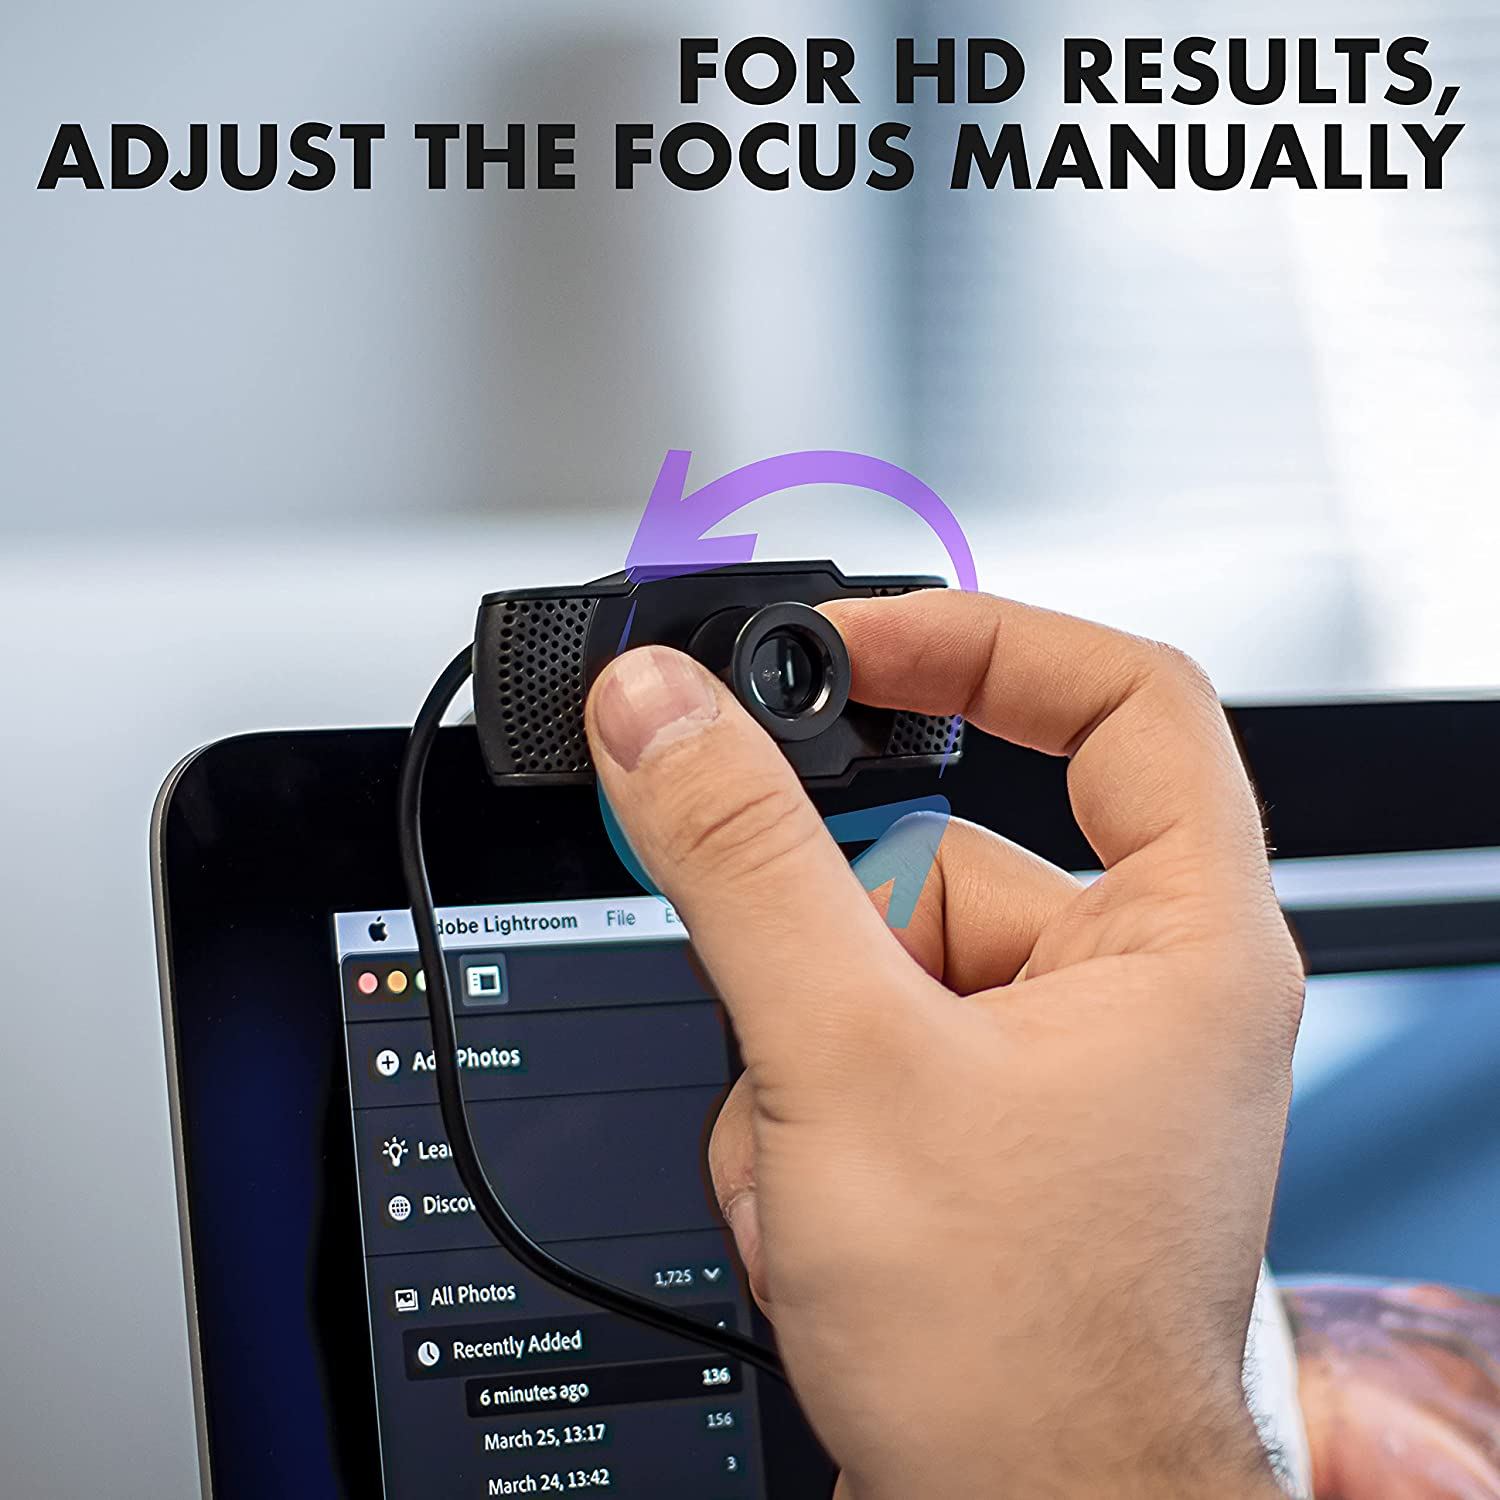 For Meetings Wired USB Camera for TV Full HD Quality Gaming 1080P USB Webcam with Built-In Microphone Conferences Laptop /& Desktop Computer Streaming Noise Cancelling Mic PC Monitor